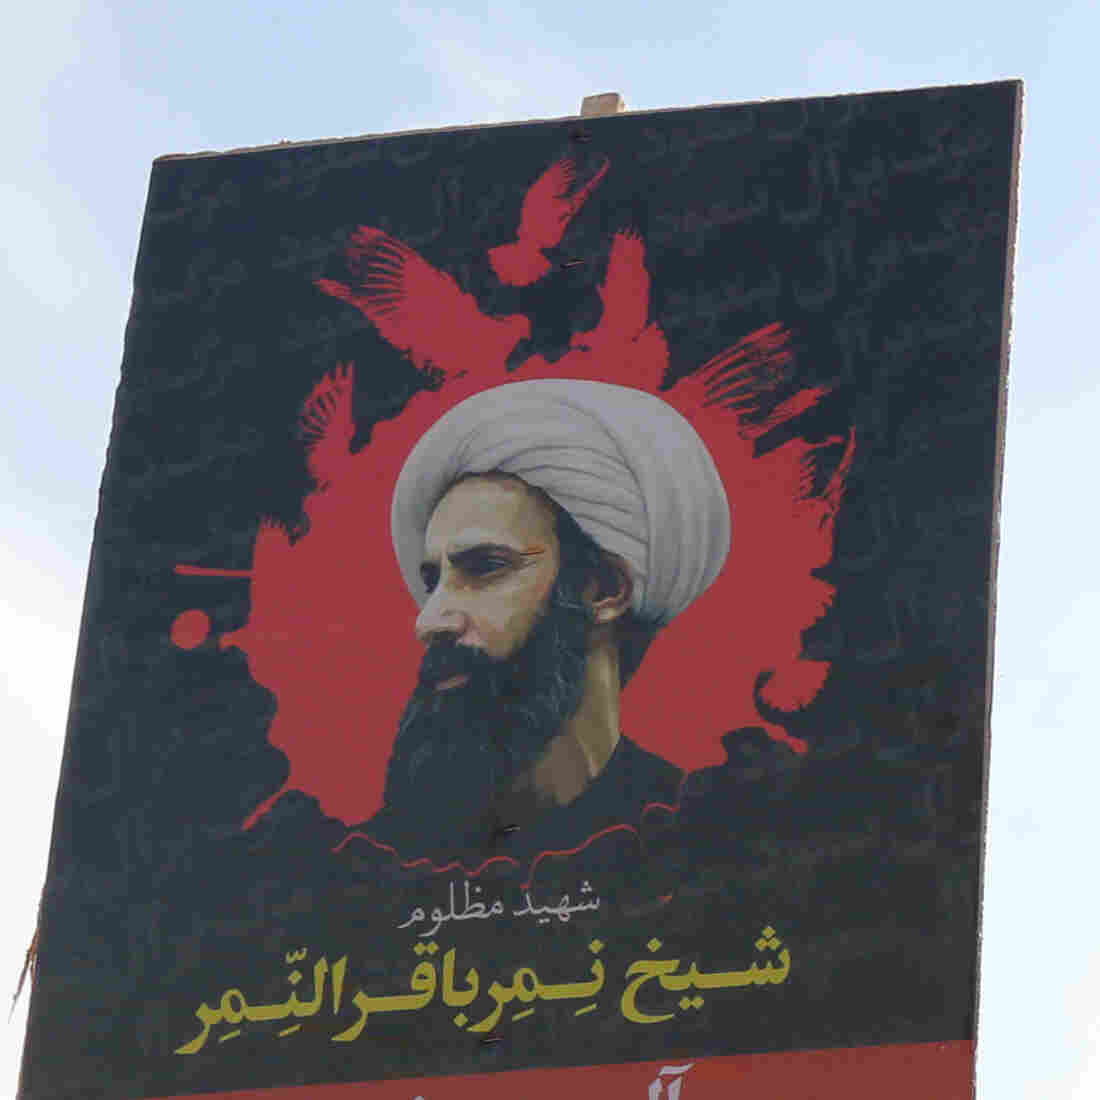 Iranian women in the capital Tehran demonstrate against the execution of a prominent Shiite Muslim cleric Nimr al-Nimr (seen on the signs). He was among 47 people beheaded by Saudi authorities on Saturday, a move that  escalated tensions between the two countries.